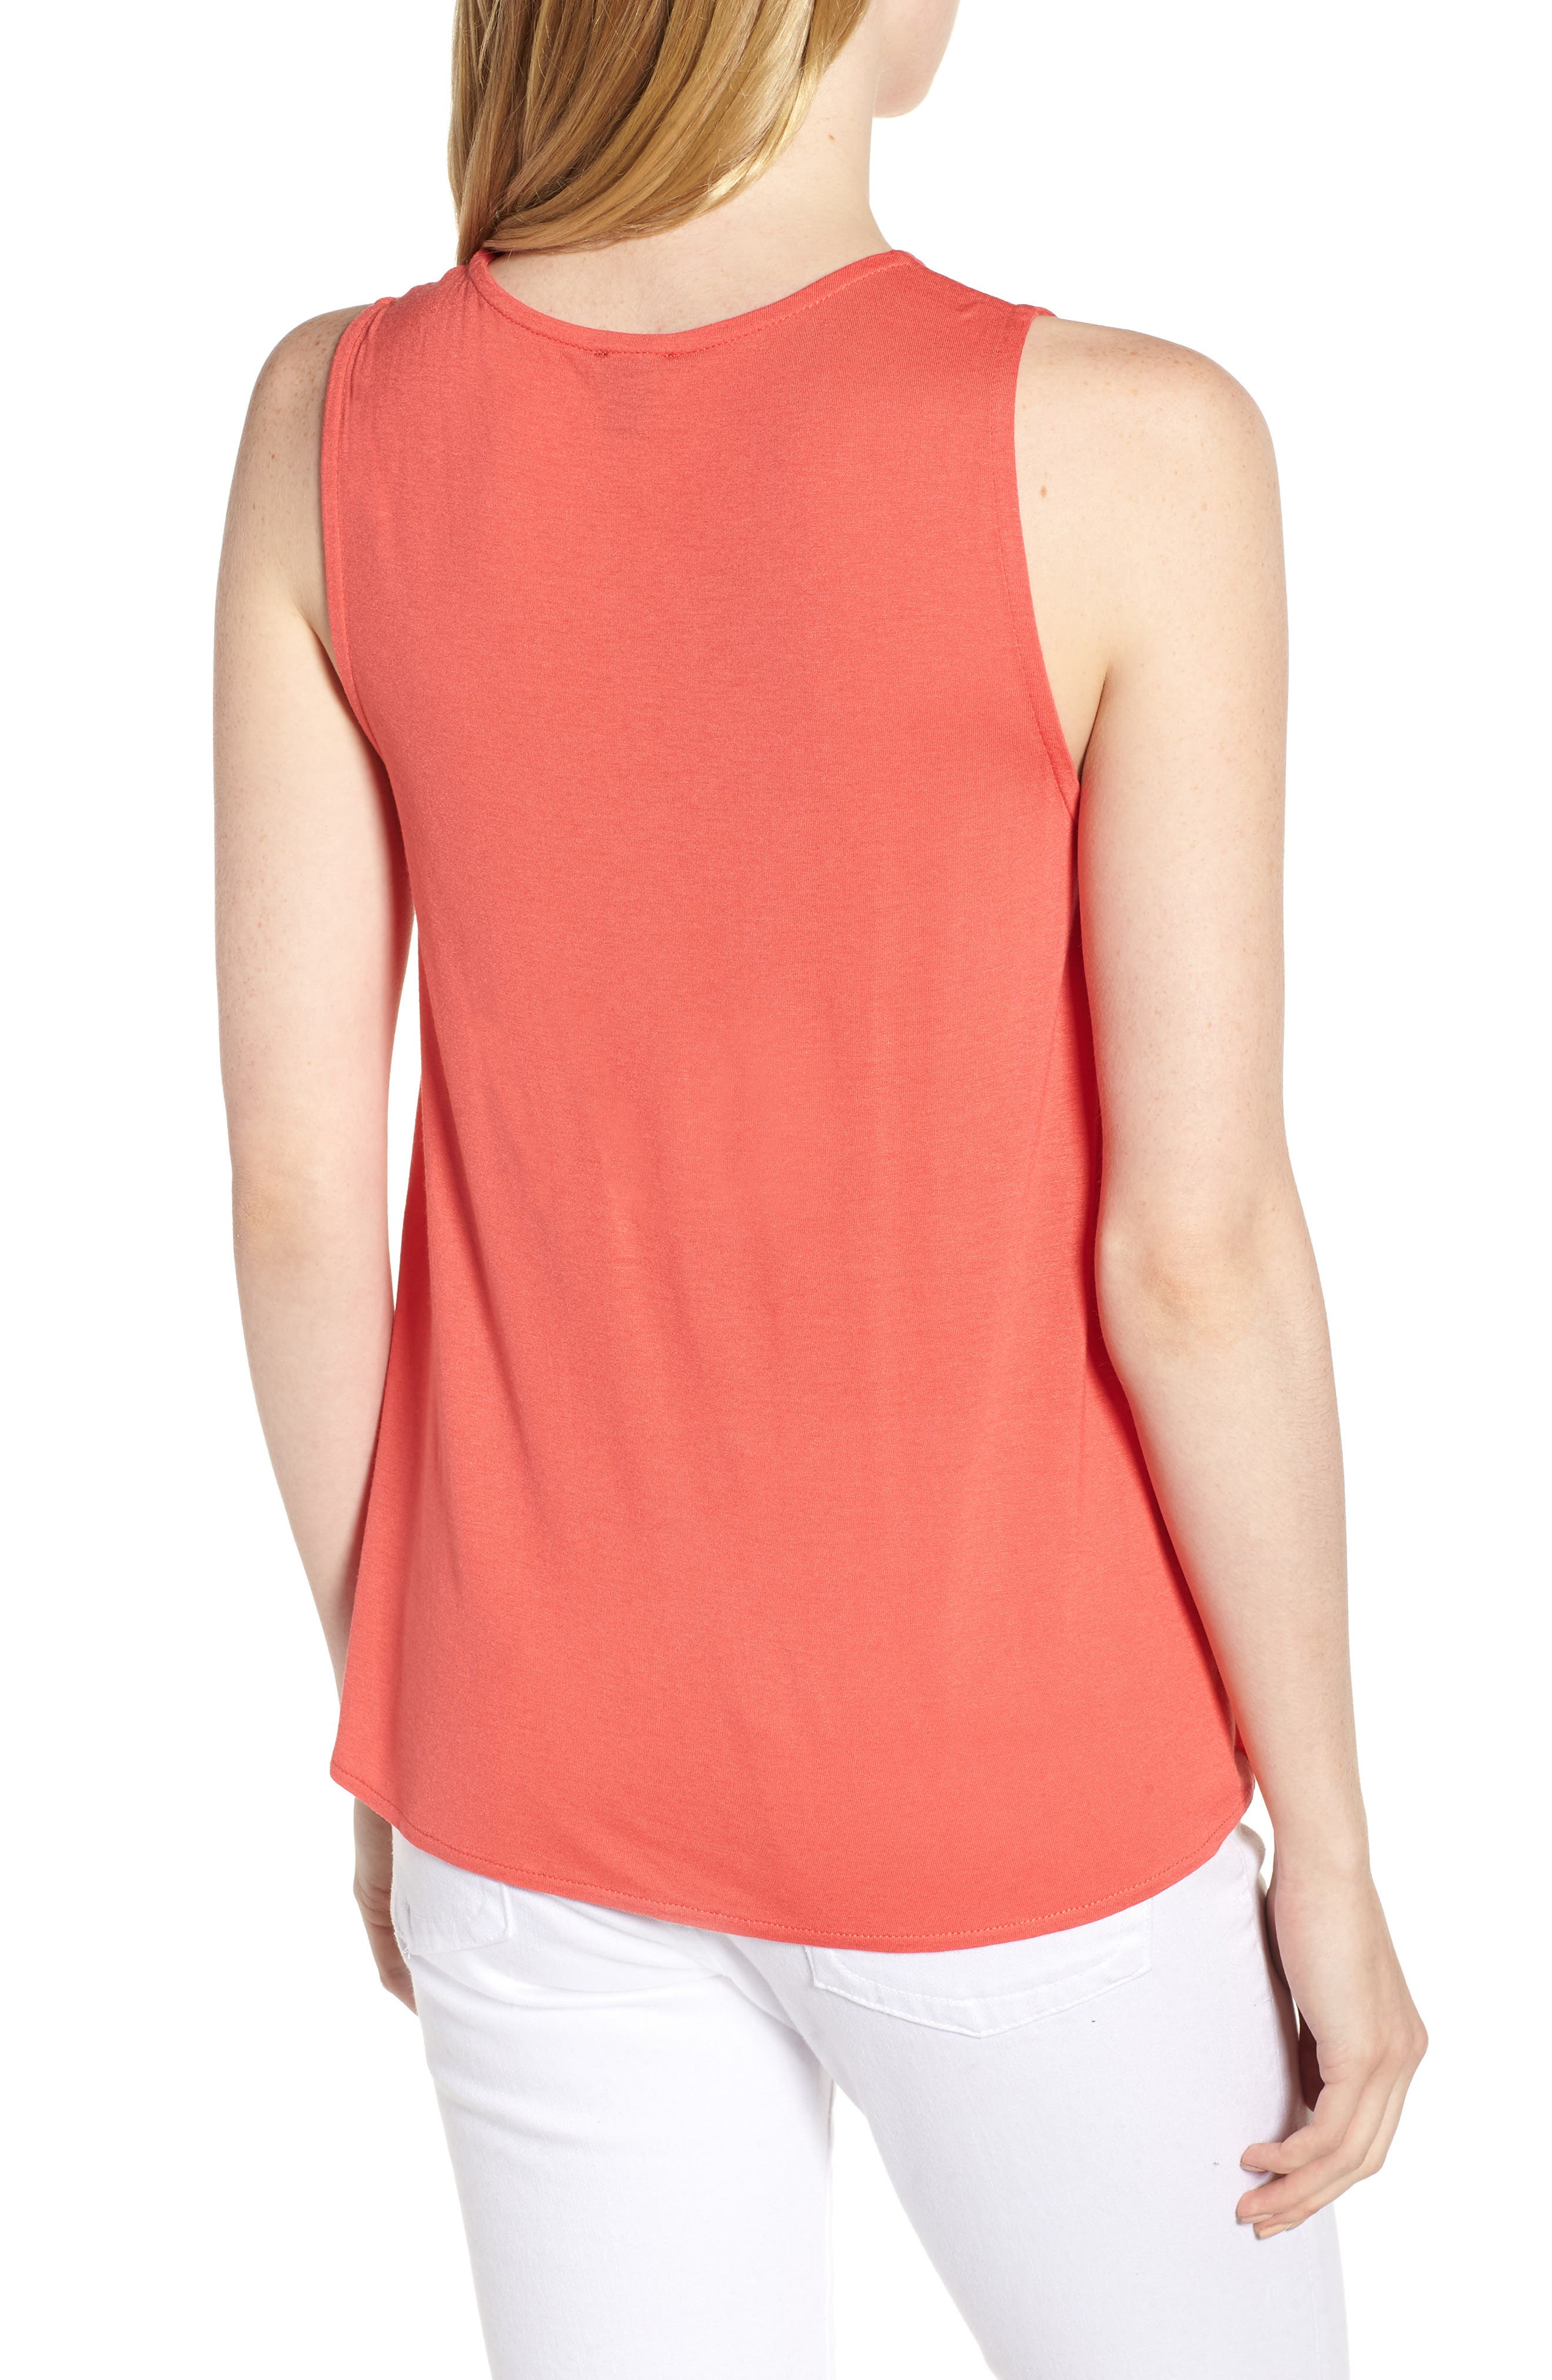 J.Crew Pleated Swing Tank Top,                             Alternate thumbnail 2, color,                             Coral